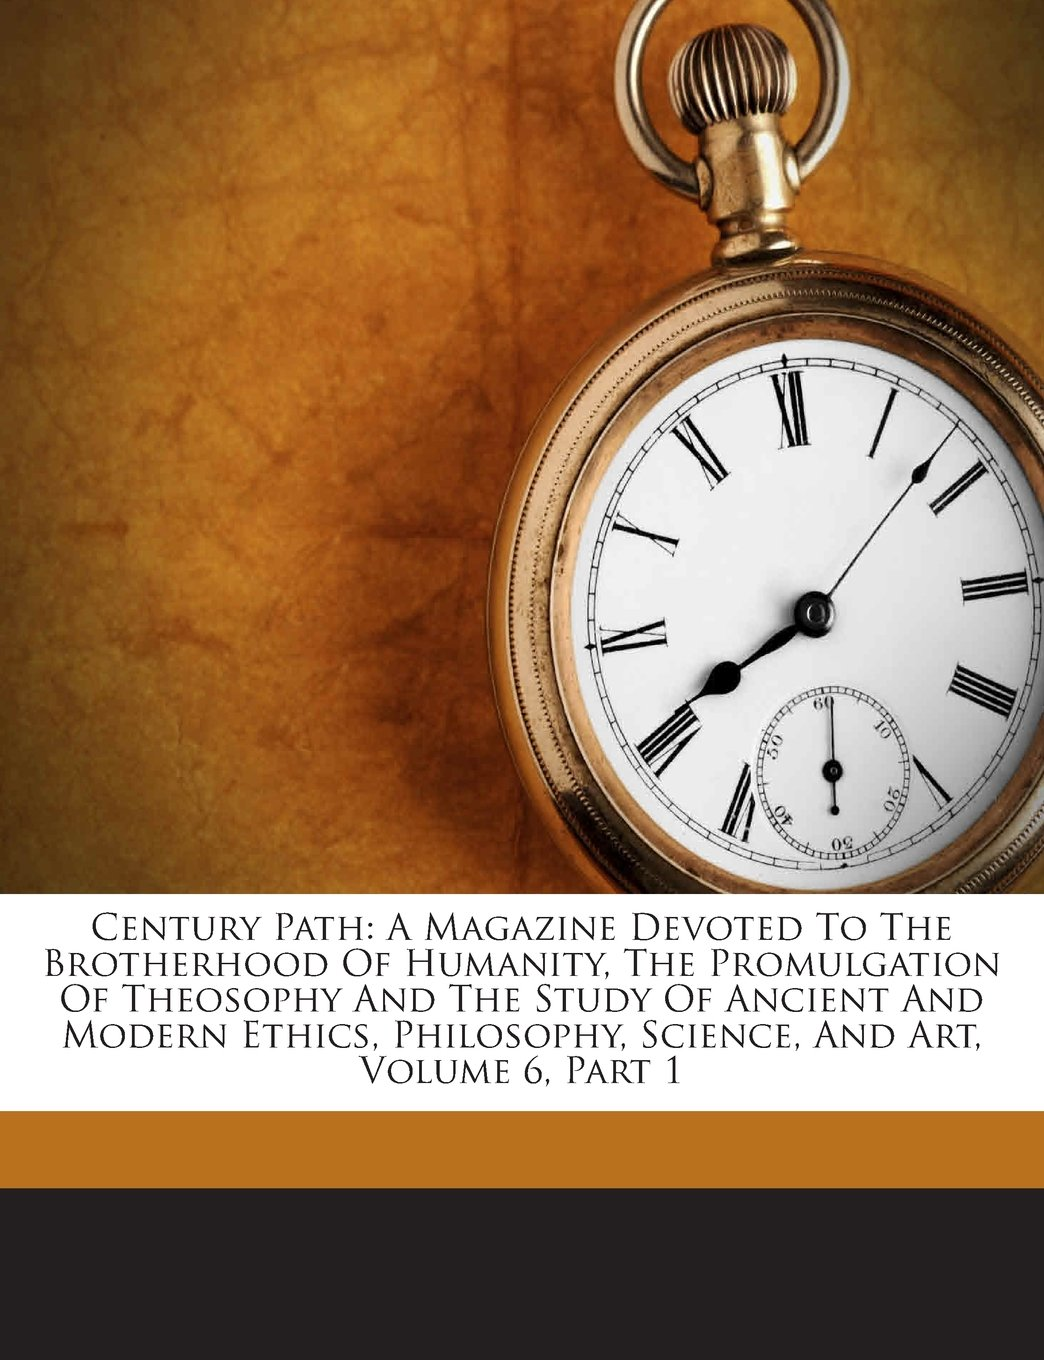 Download Century Path: A Magazine Devoted To The Brotherhood Of Humanity, The Promulgation Of Theosophy And The Study Of Ancient And Modern Ethics, Philosophy, Science, And Art, Volume 6, Part 1 ebook